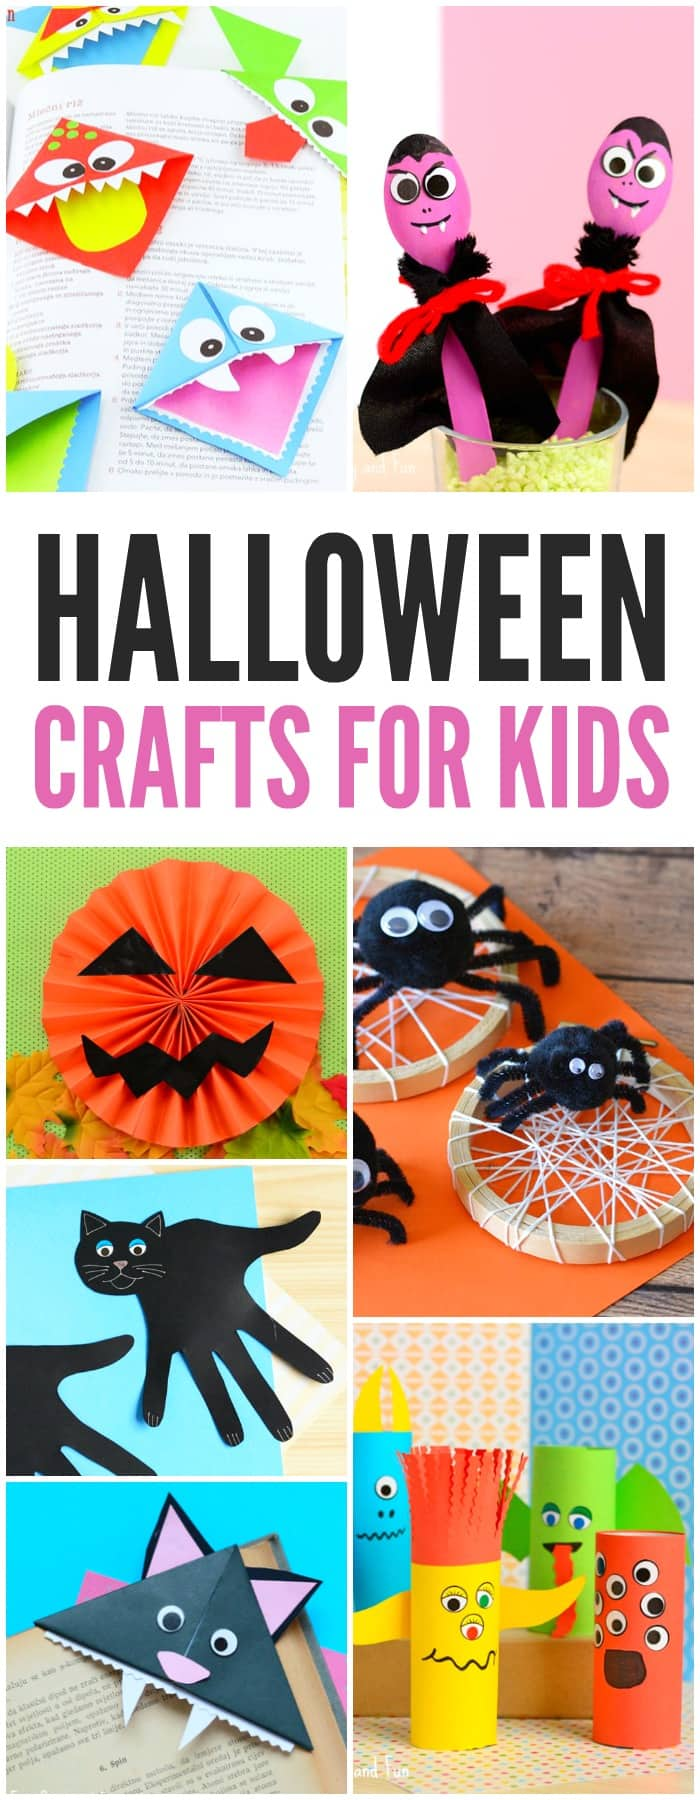 Lots of great Halloween crafts for kids, from simple ideas for toddlers and preschoolers to art and craft tutorials for older kids. Simple and fun.